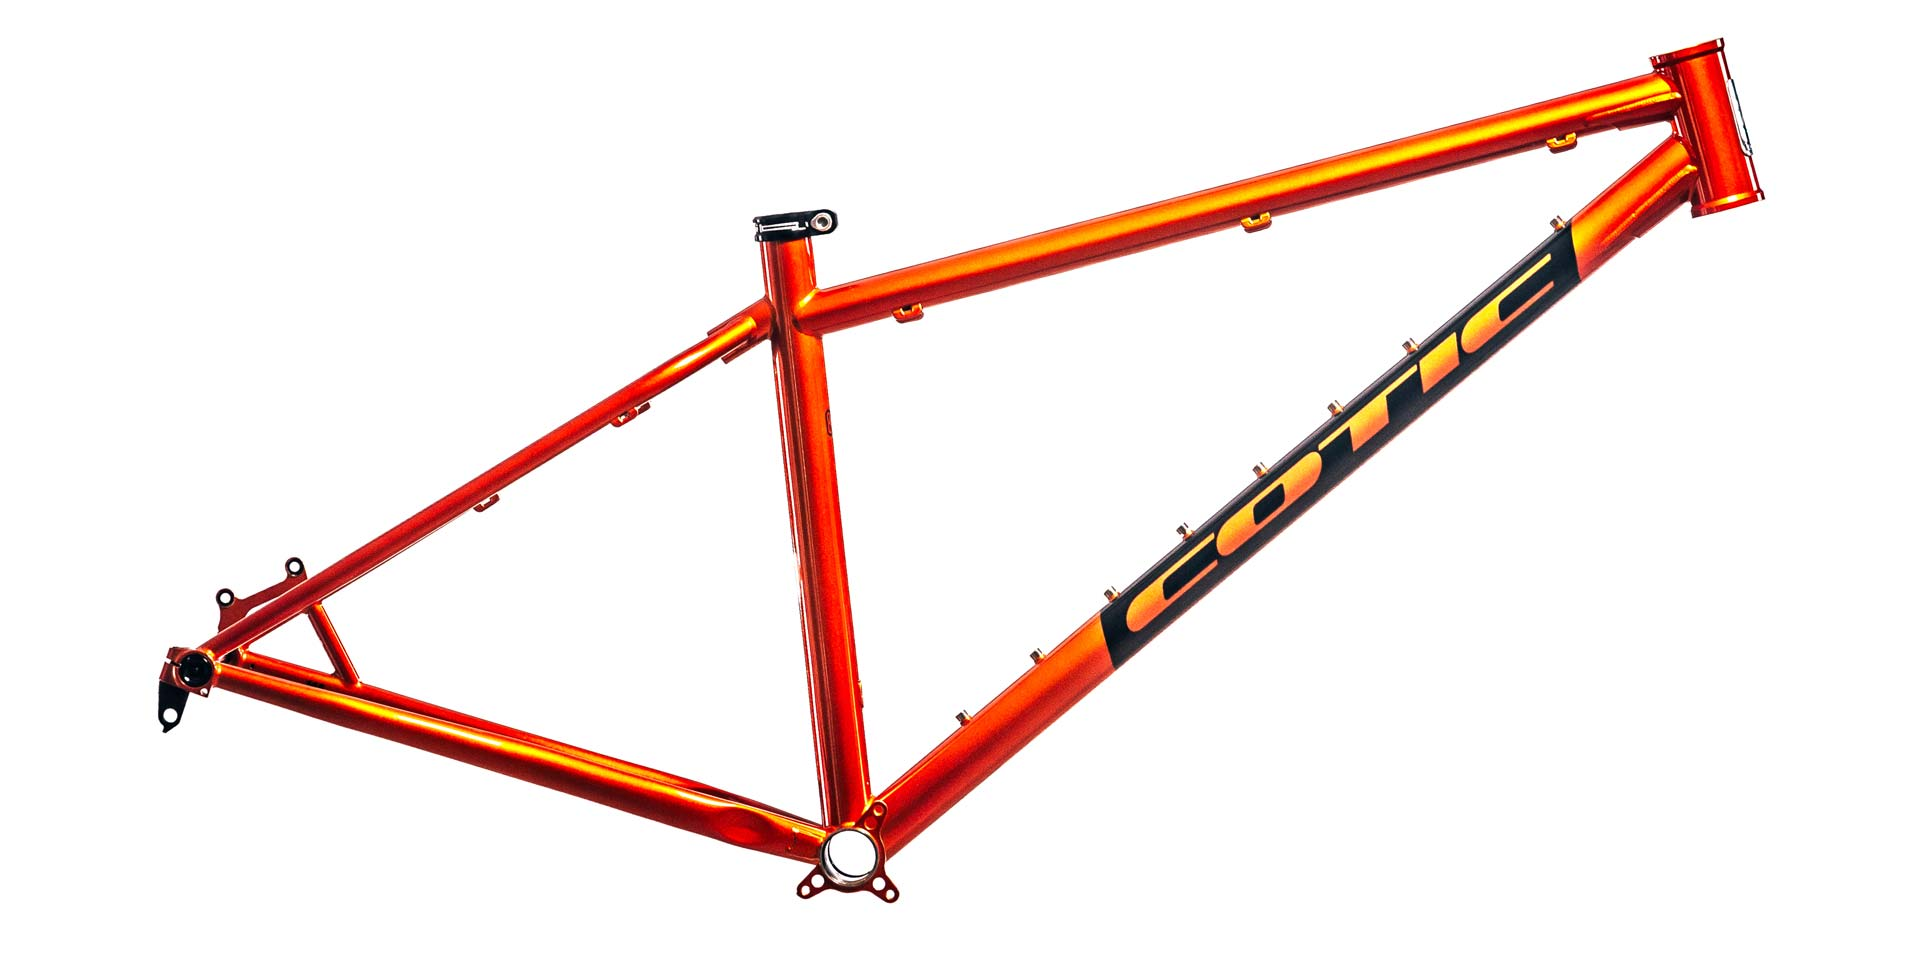 SolarisMAX in Supernova Orange, steel 853 hardtail, perfect for backpacking